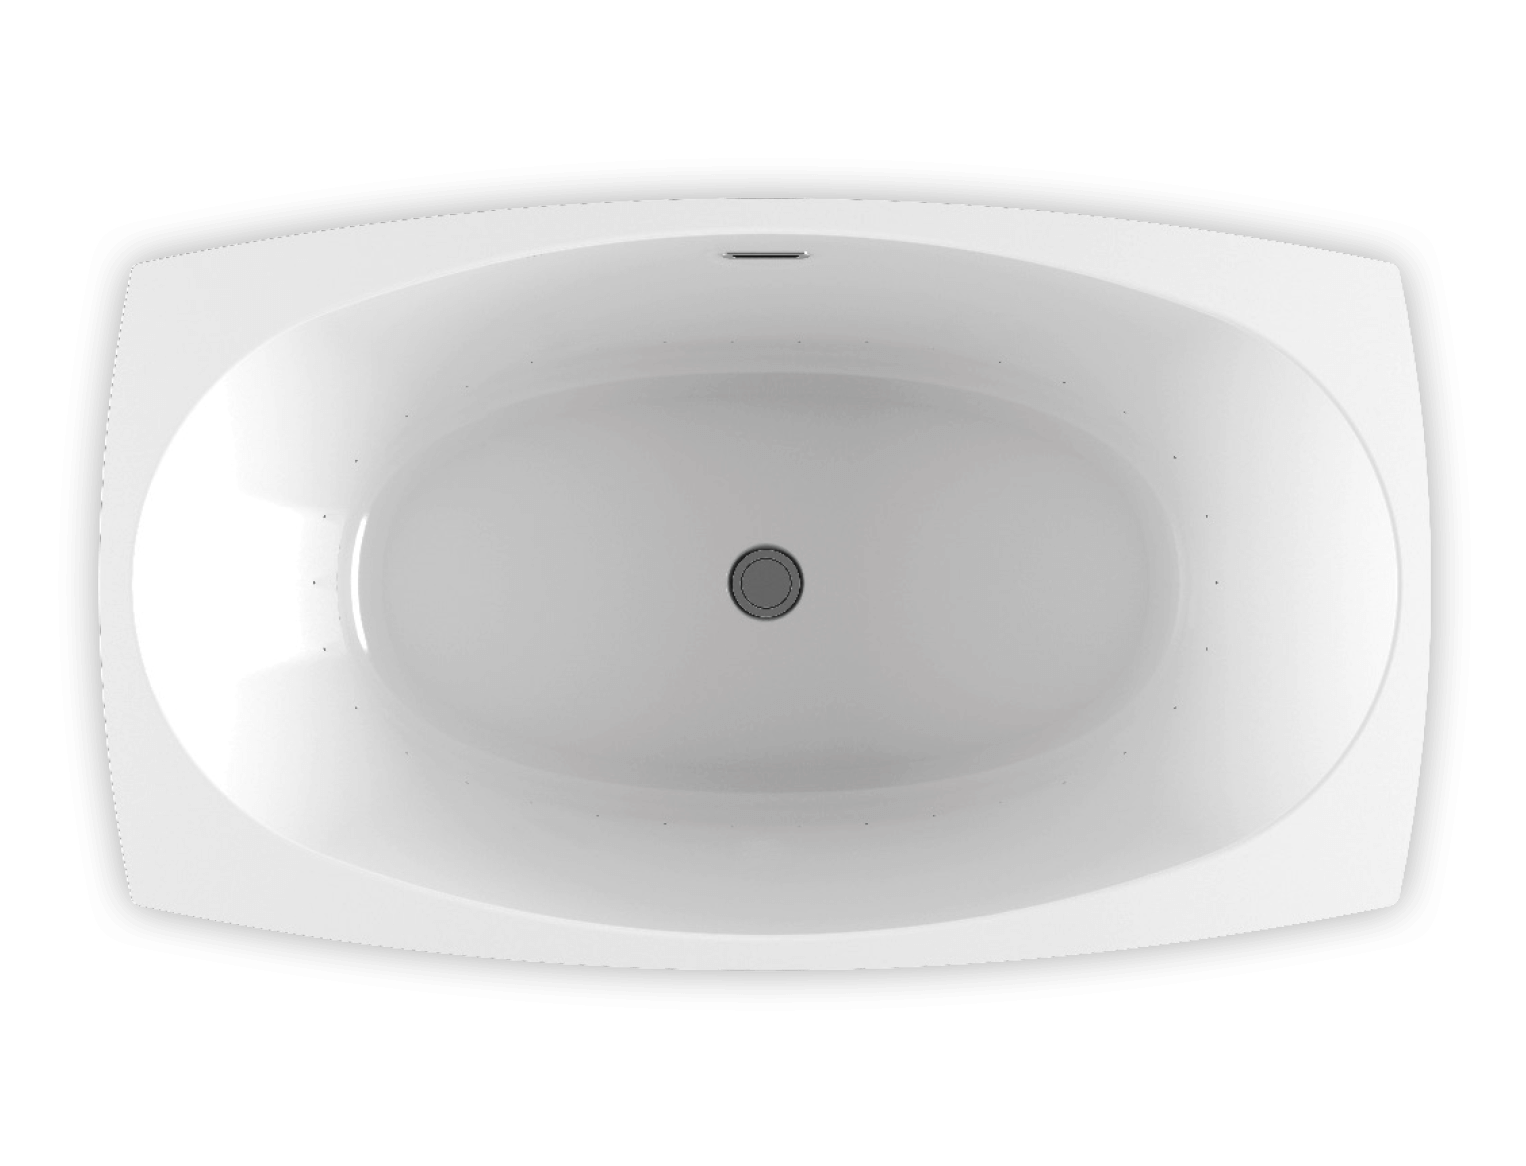 Bainultra Esthesia 6638 freestanding air jet bathtub for your modern bathroom